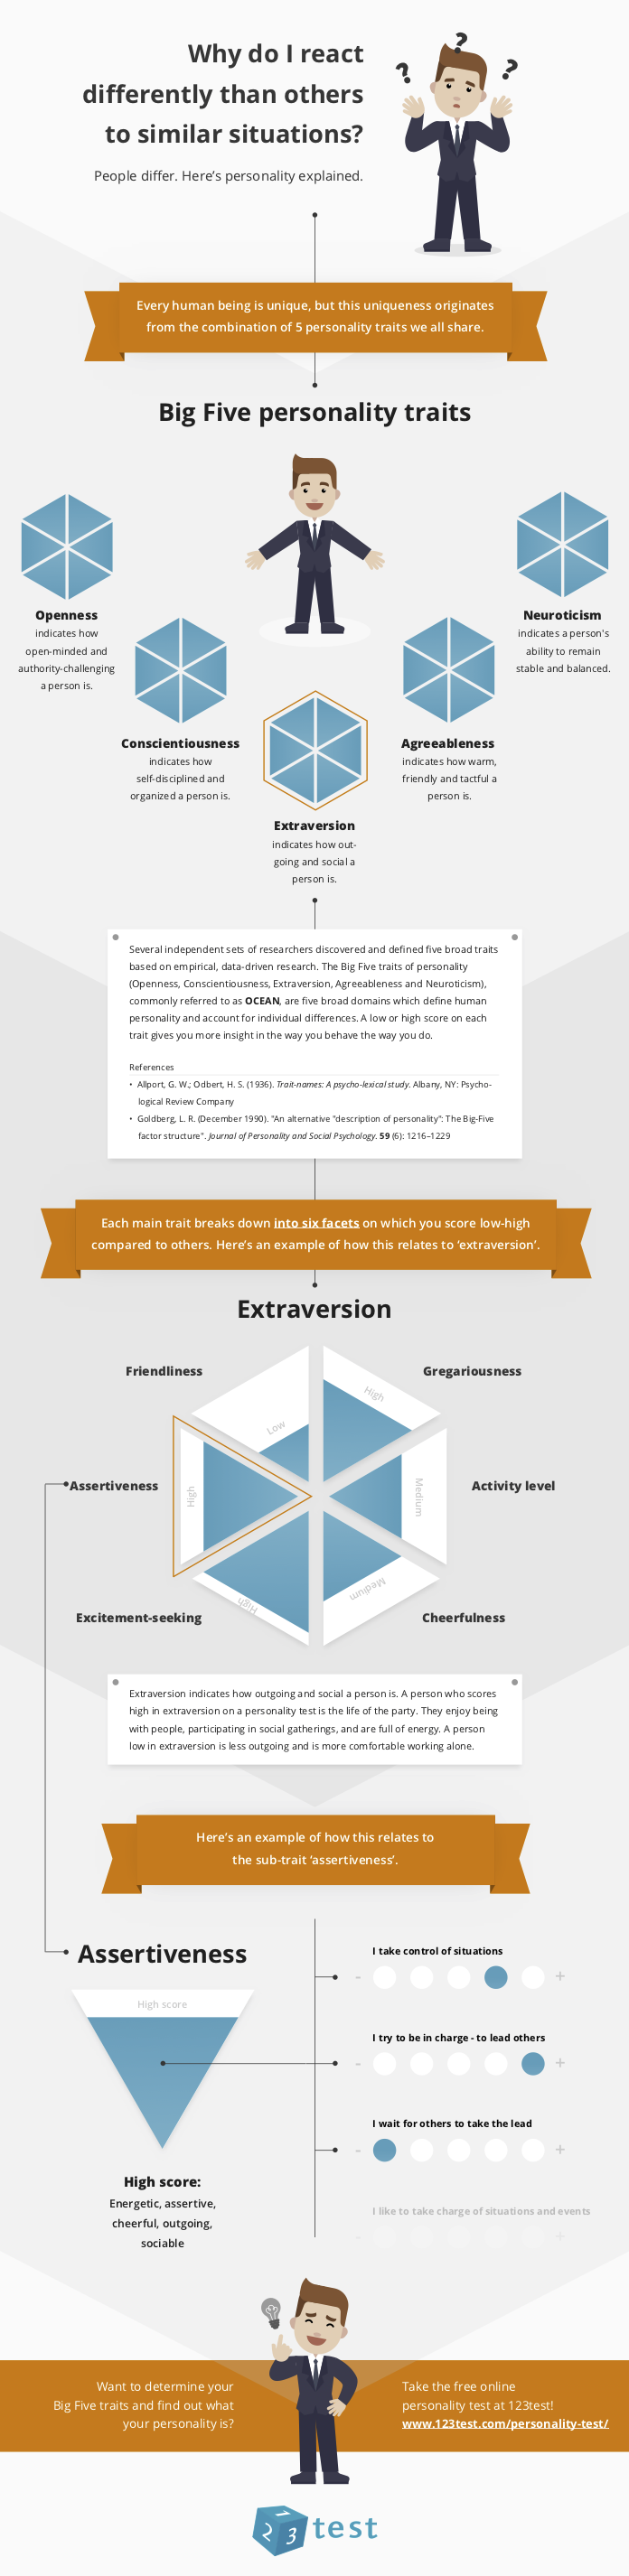 Big Five personality trait extraversion